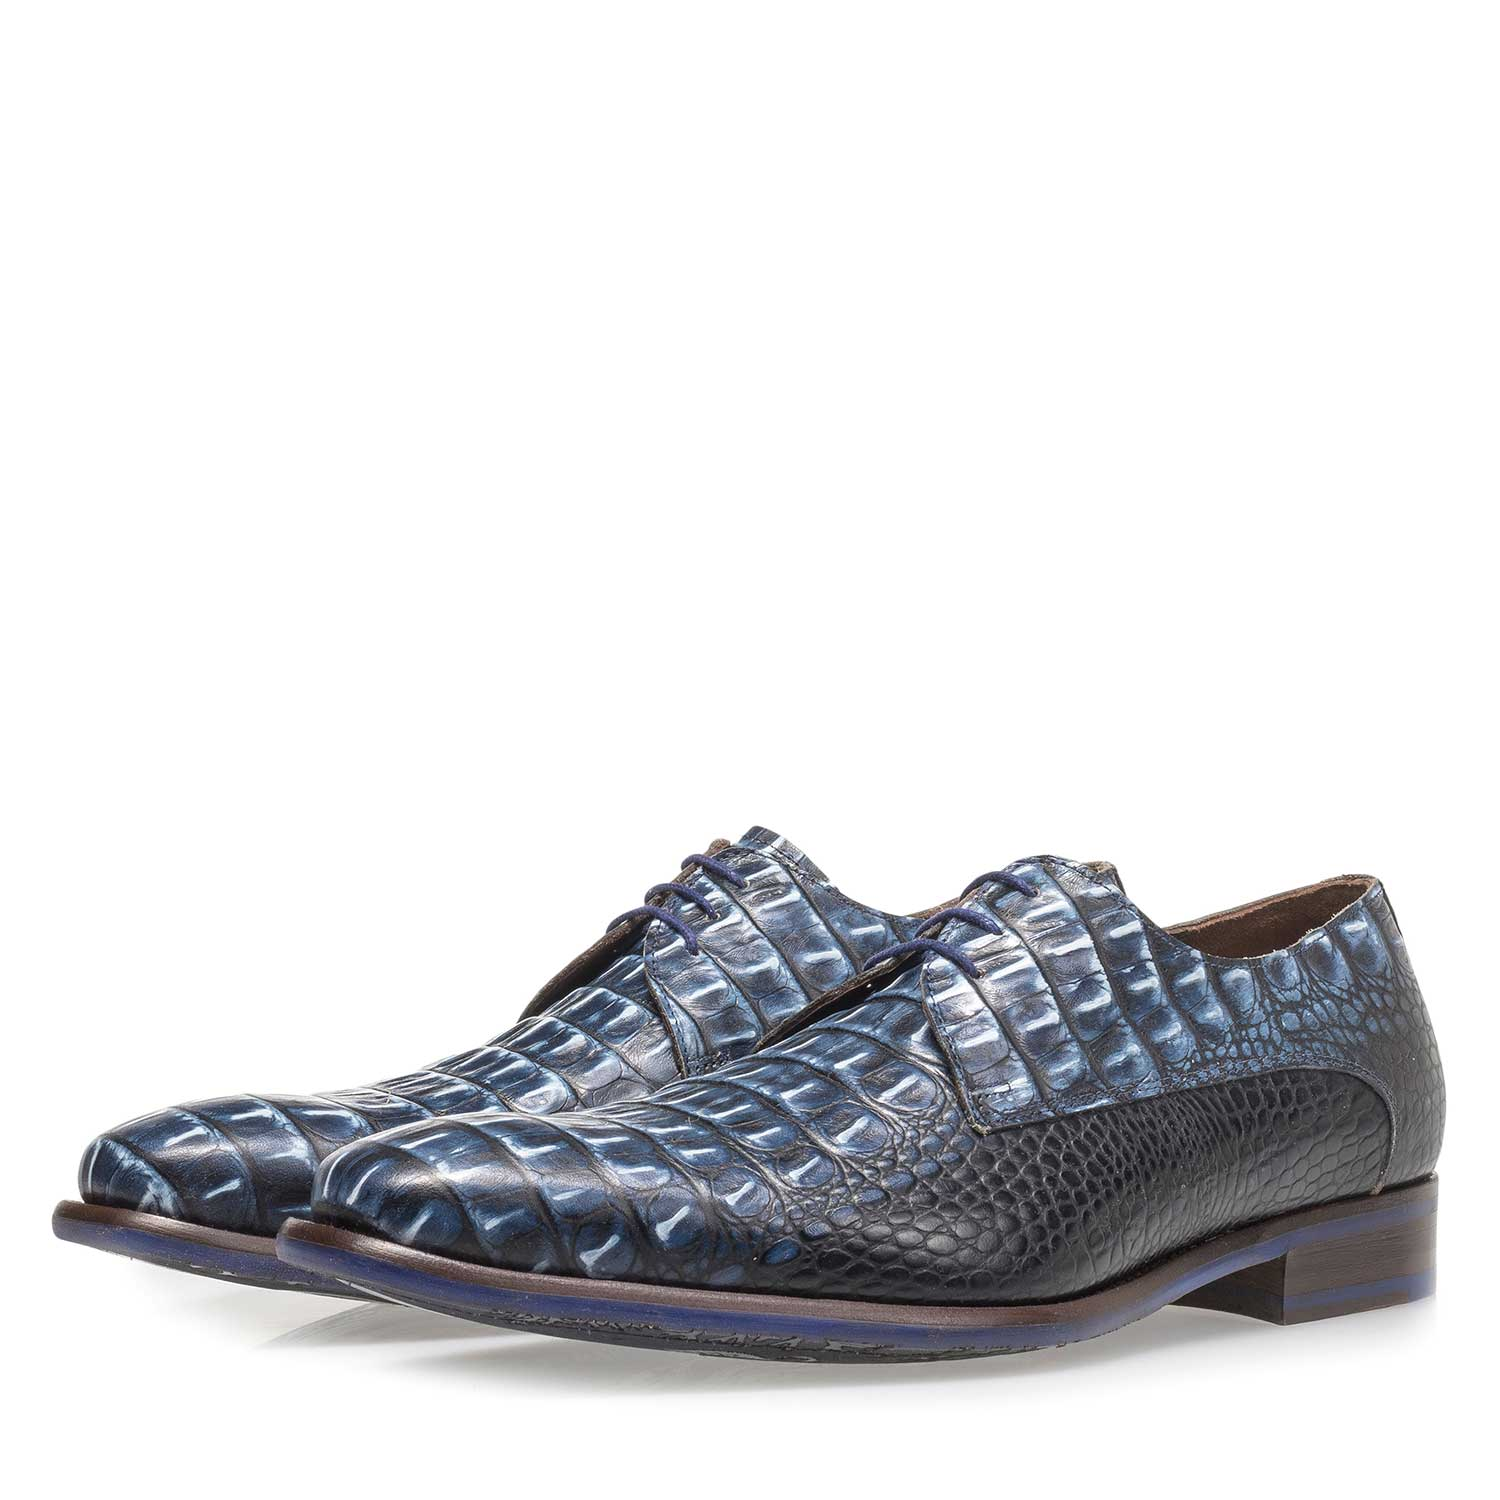 18159/06 - Blue leather lace shoe with croco print